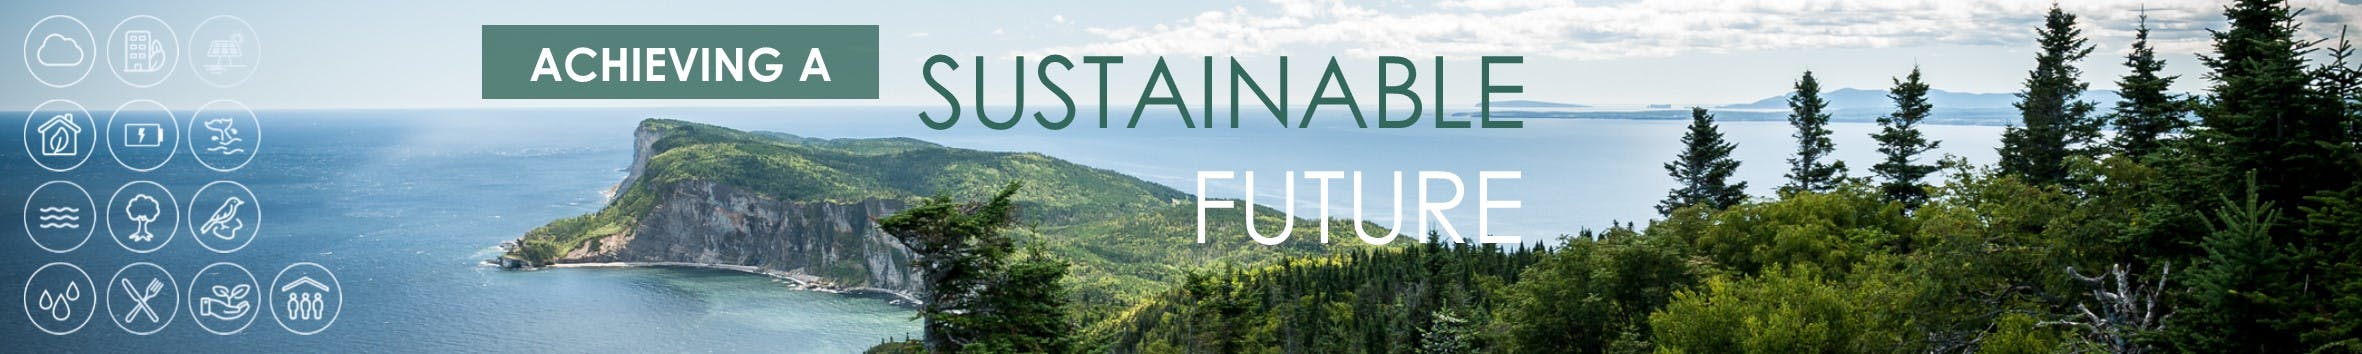 Achieveing a sustainable future